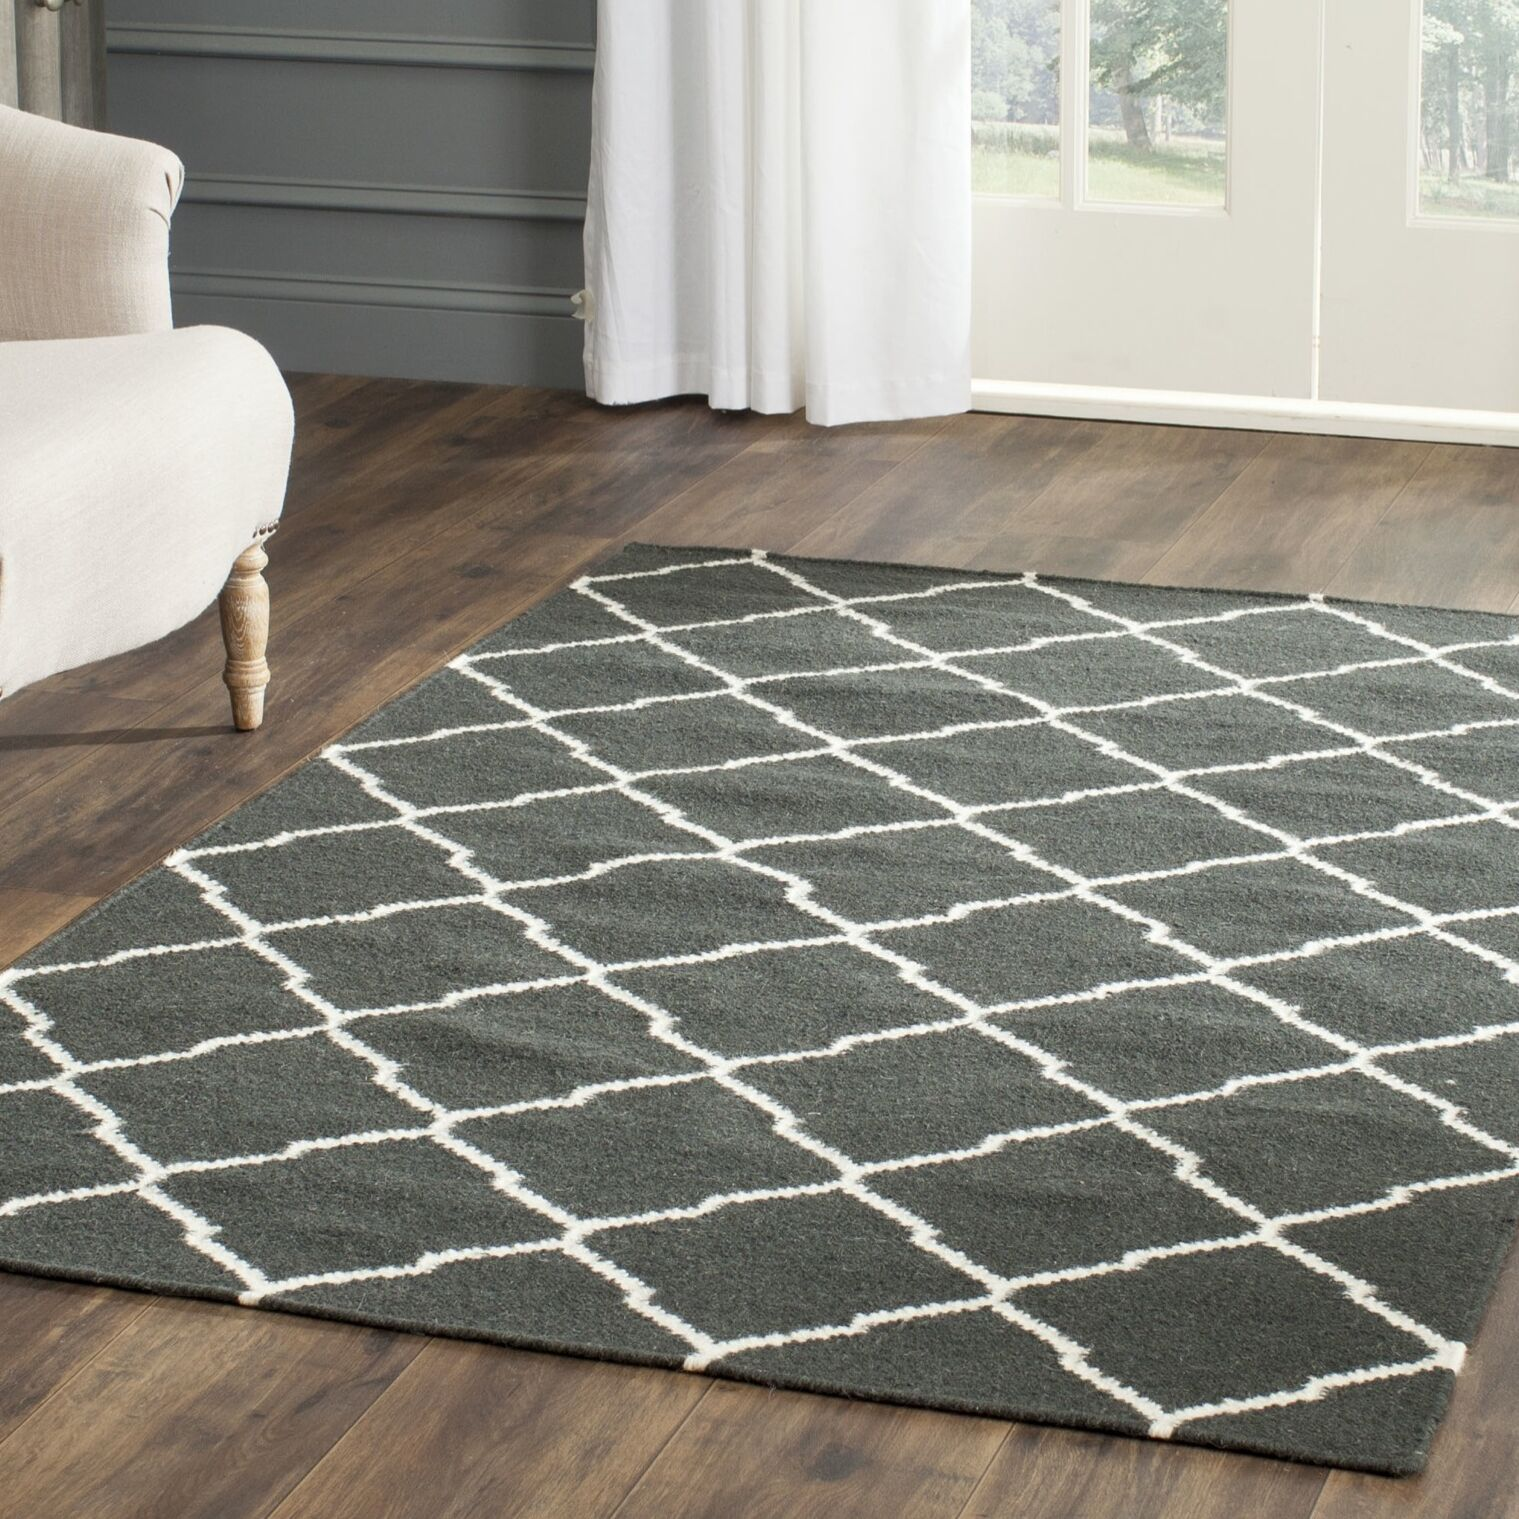 Dhurries Hand-Woven Wool Gray/Ivory Area Rug Rug Size: Rectangle 4' x 6'